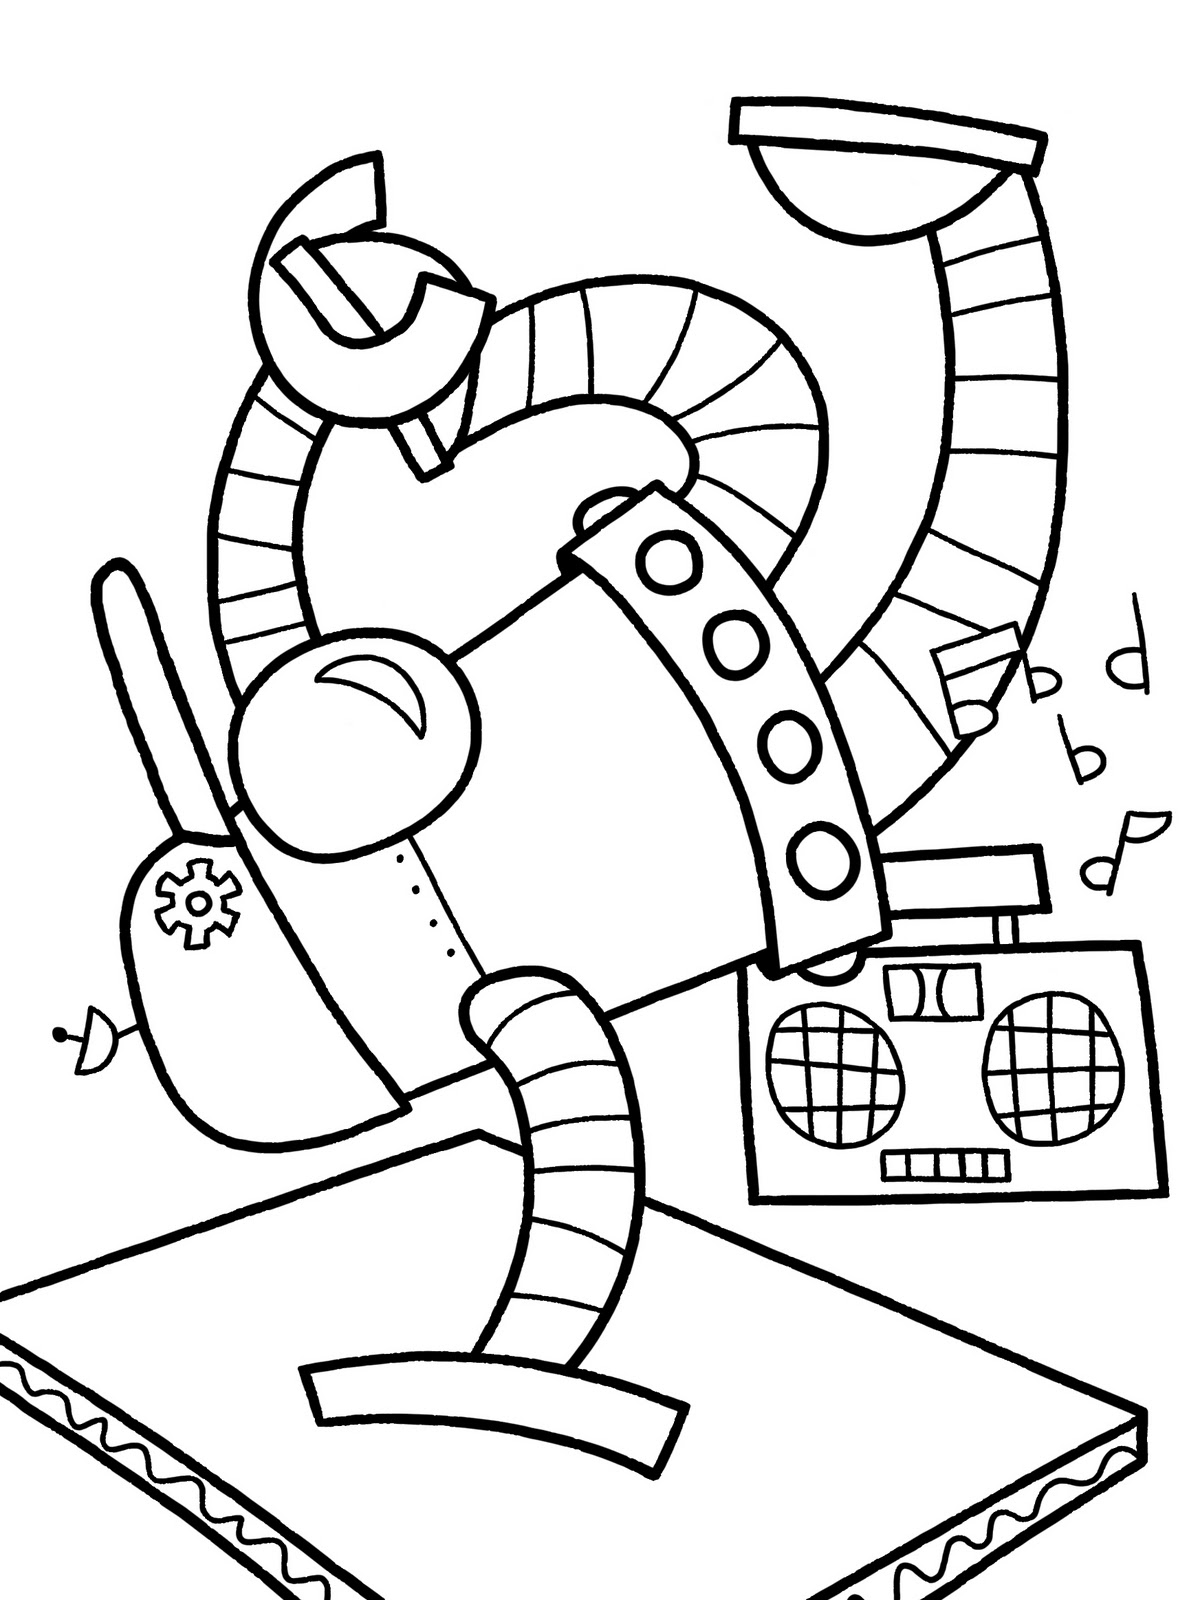 robot colouring pictures robot colouring sheet 2 robots thecolouringbookorg robot colouring pictures